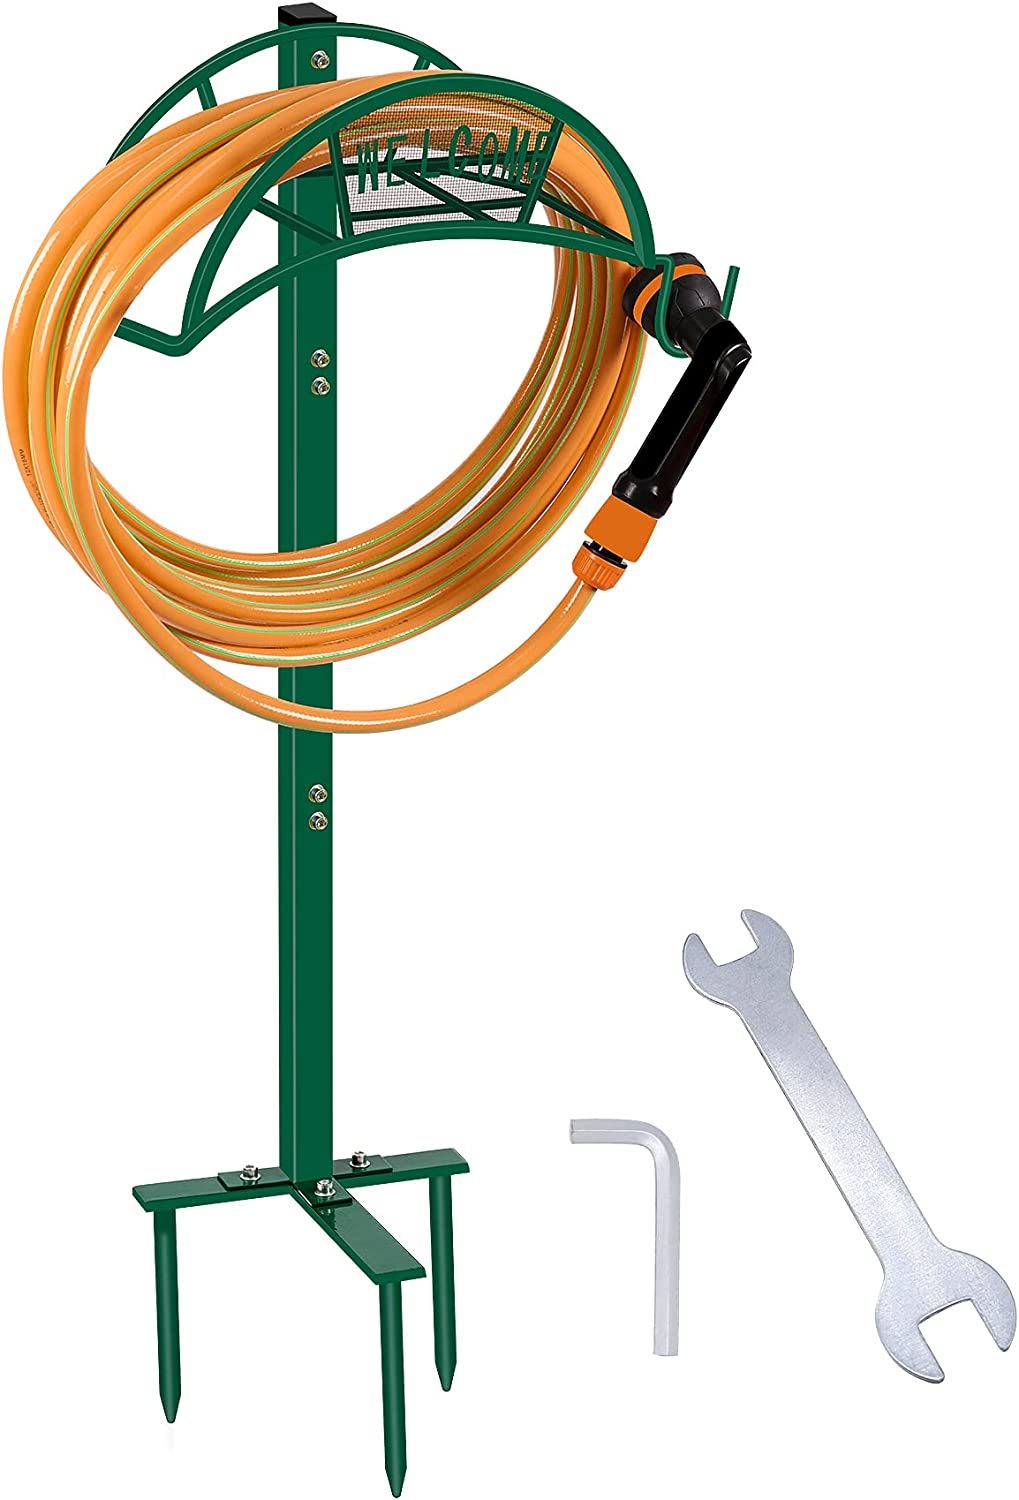 West Bay Garden Hose Holder Hanger, Hose Reel Holder Free Standing Metal Water Heavy Iron Holders Storage Stand Rack Yard Lawn Unique 2021 New Version Green (Hose Not Included)